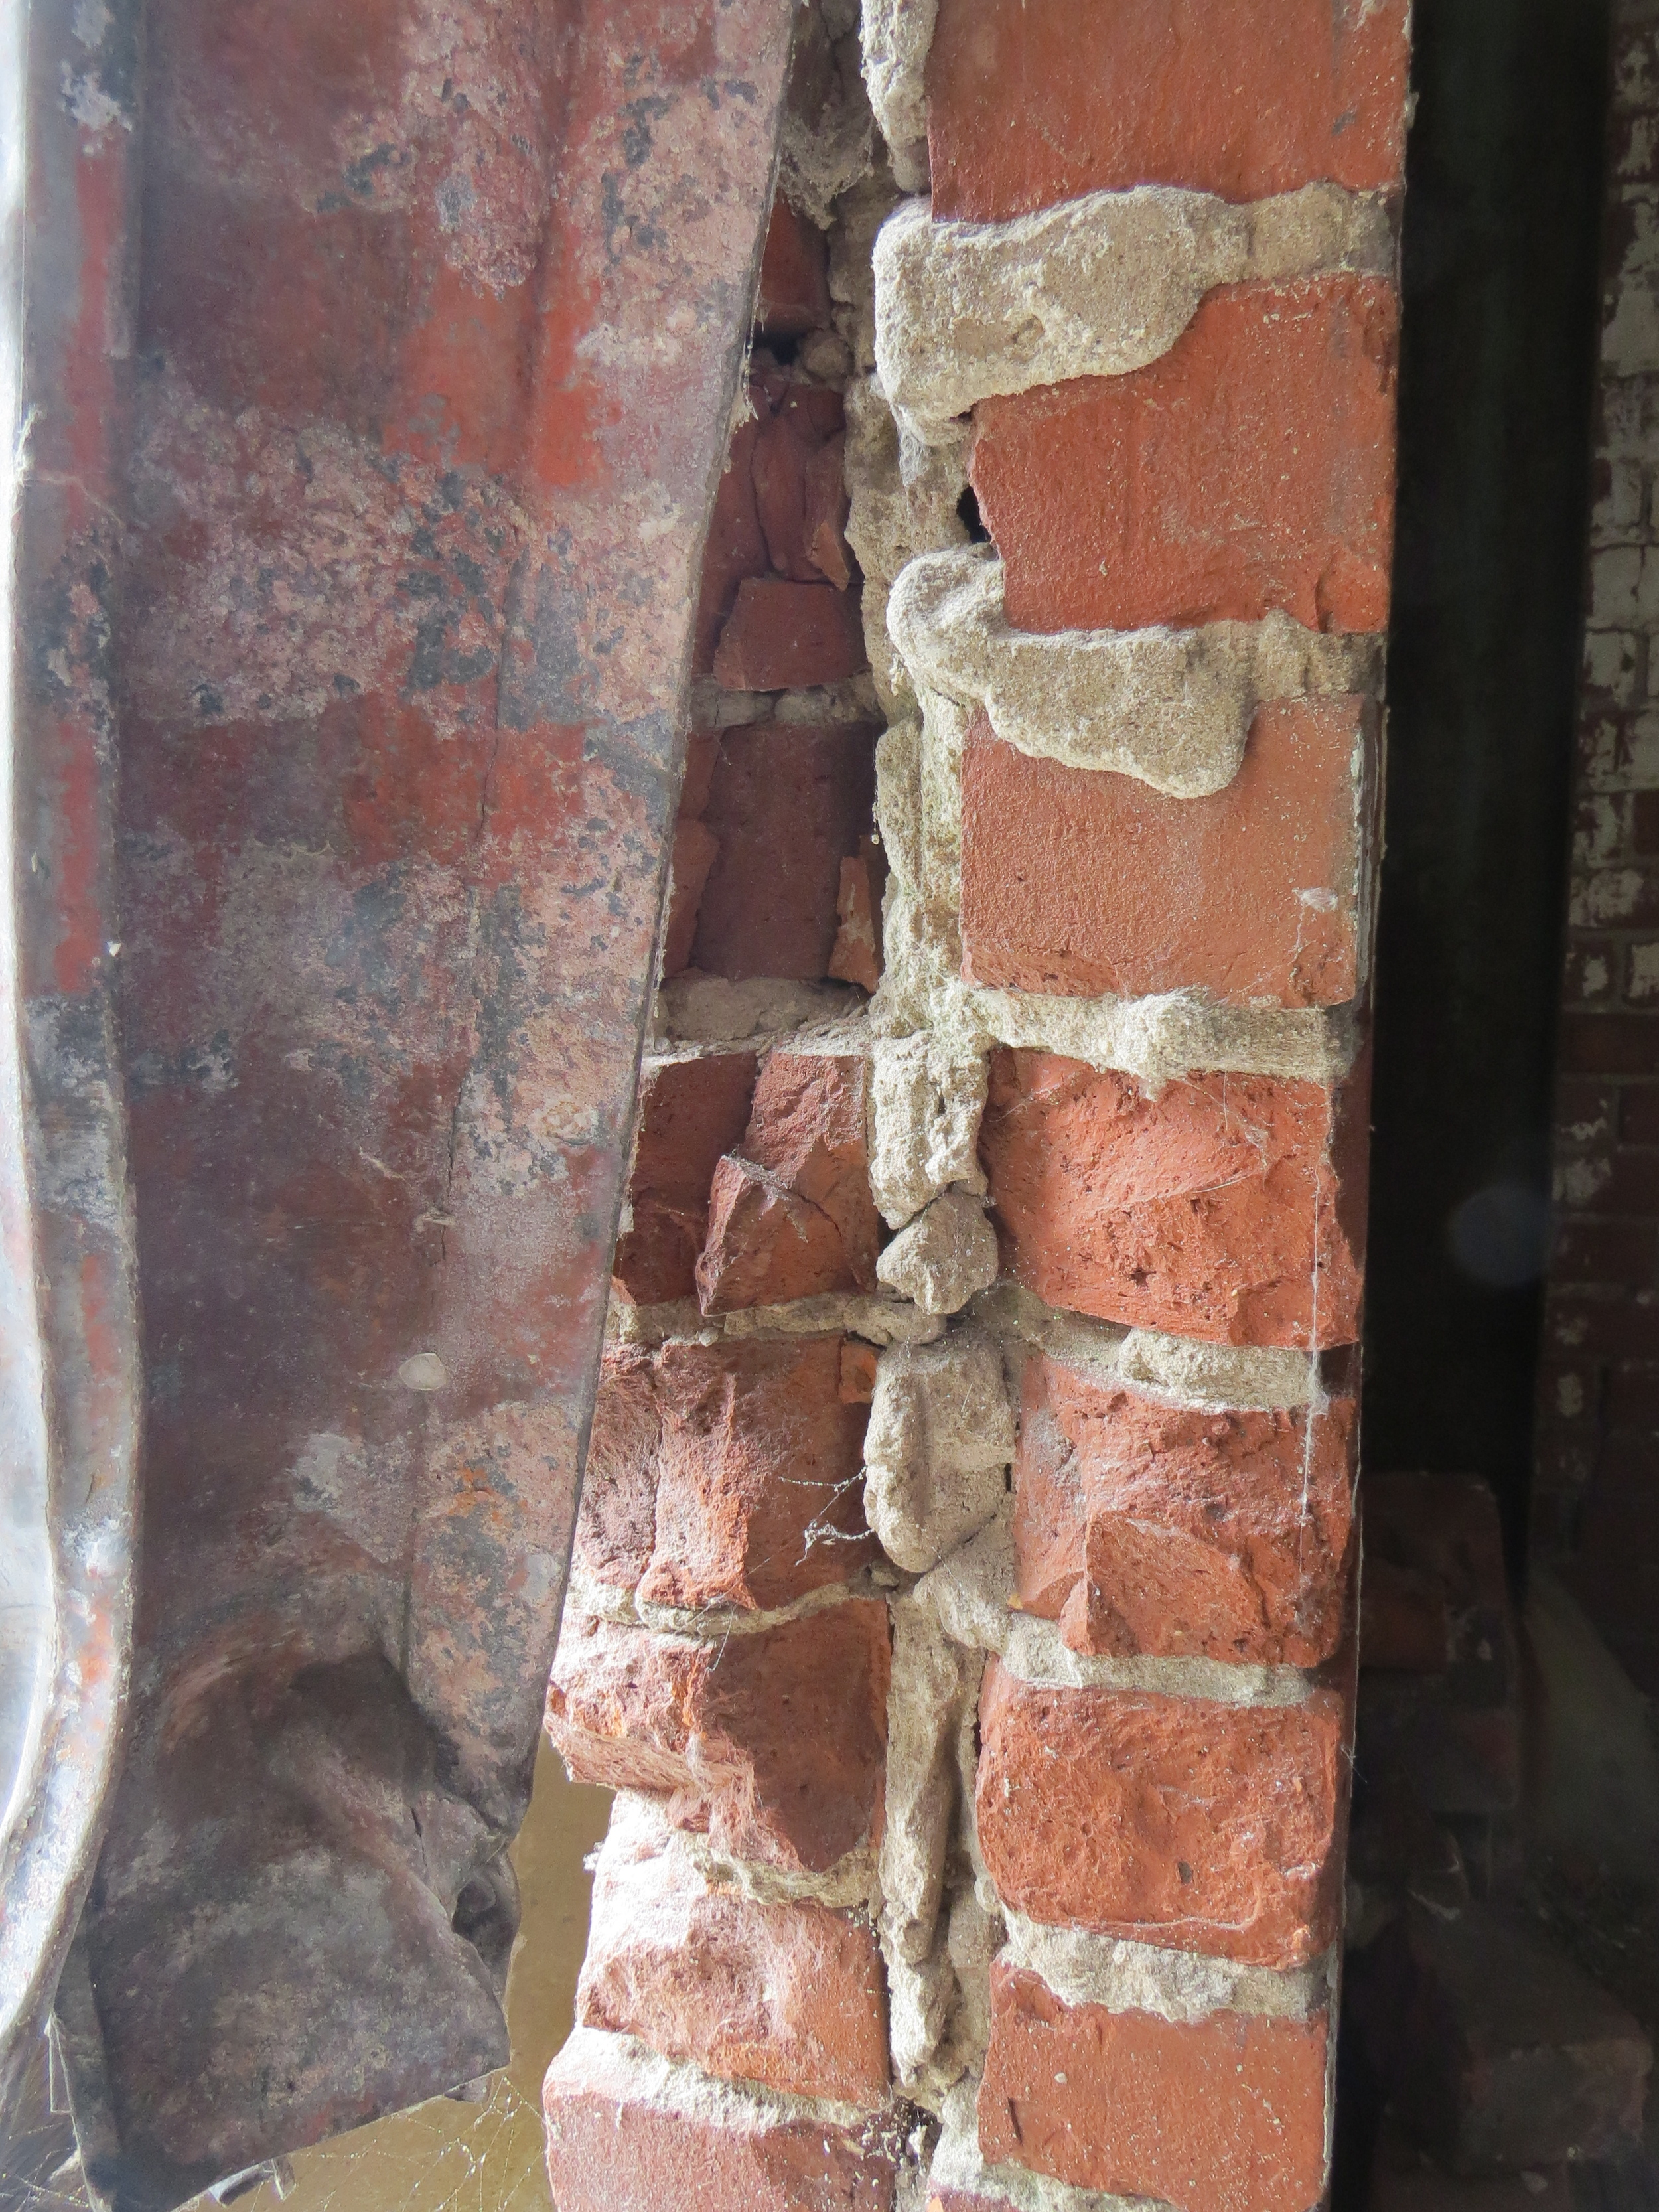 another masonry section revealed in a window opening